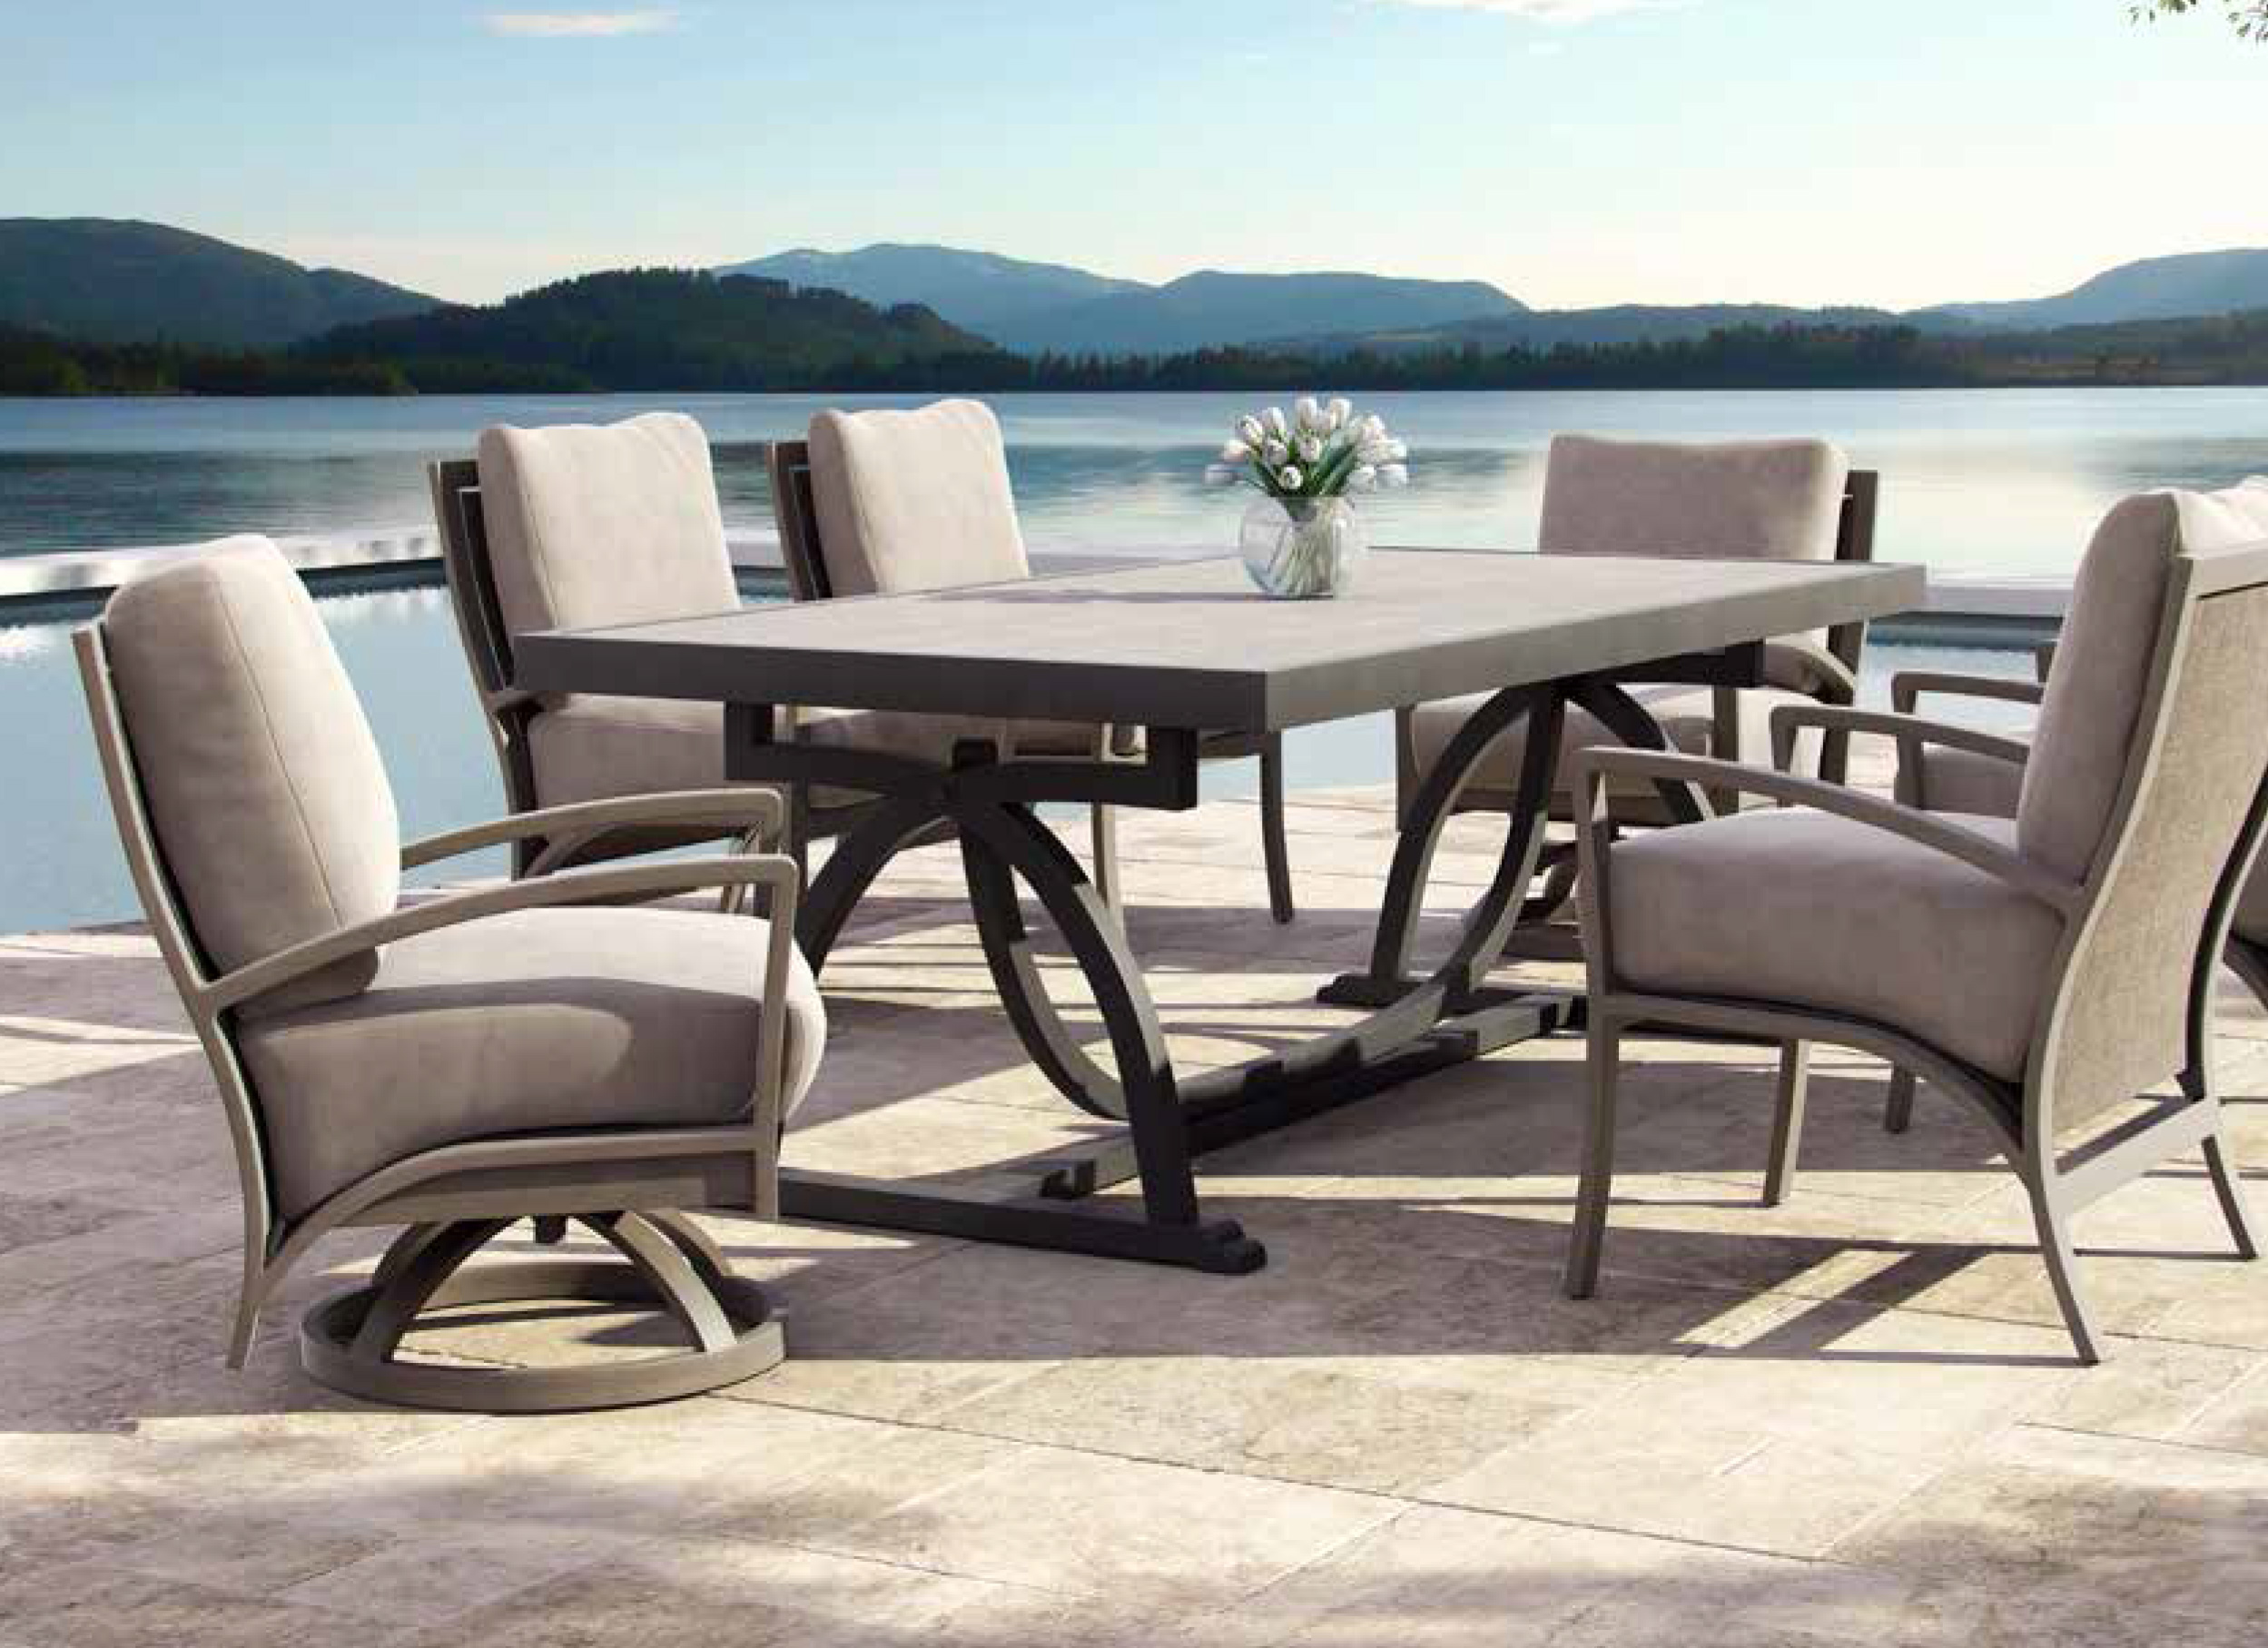 Castelle unveils Napoli outdoor collection